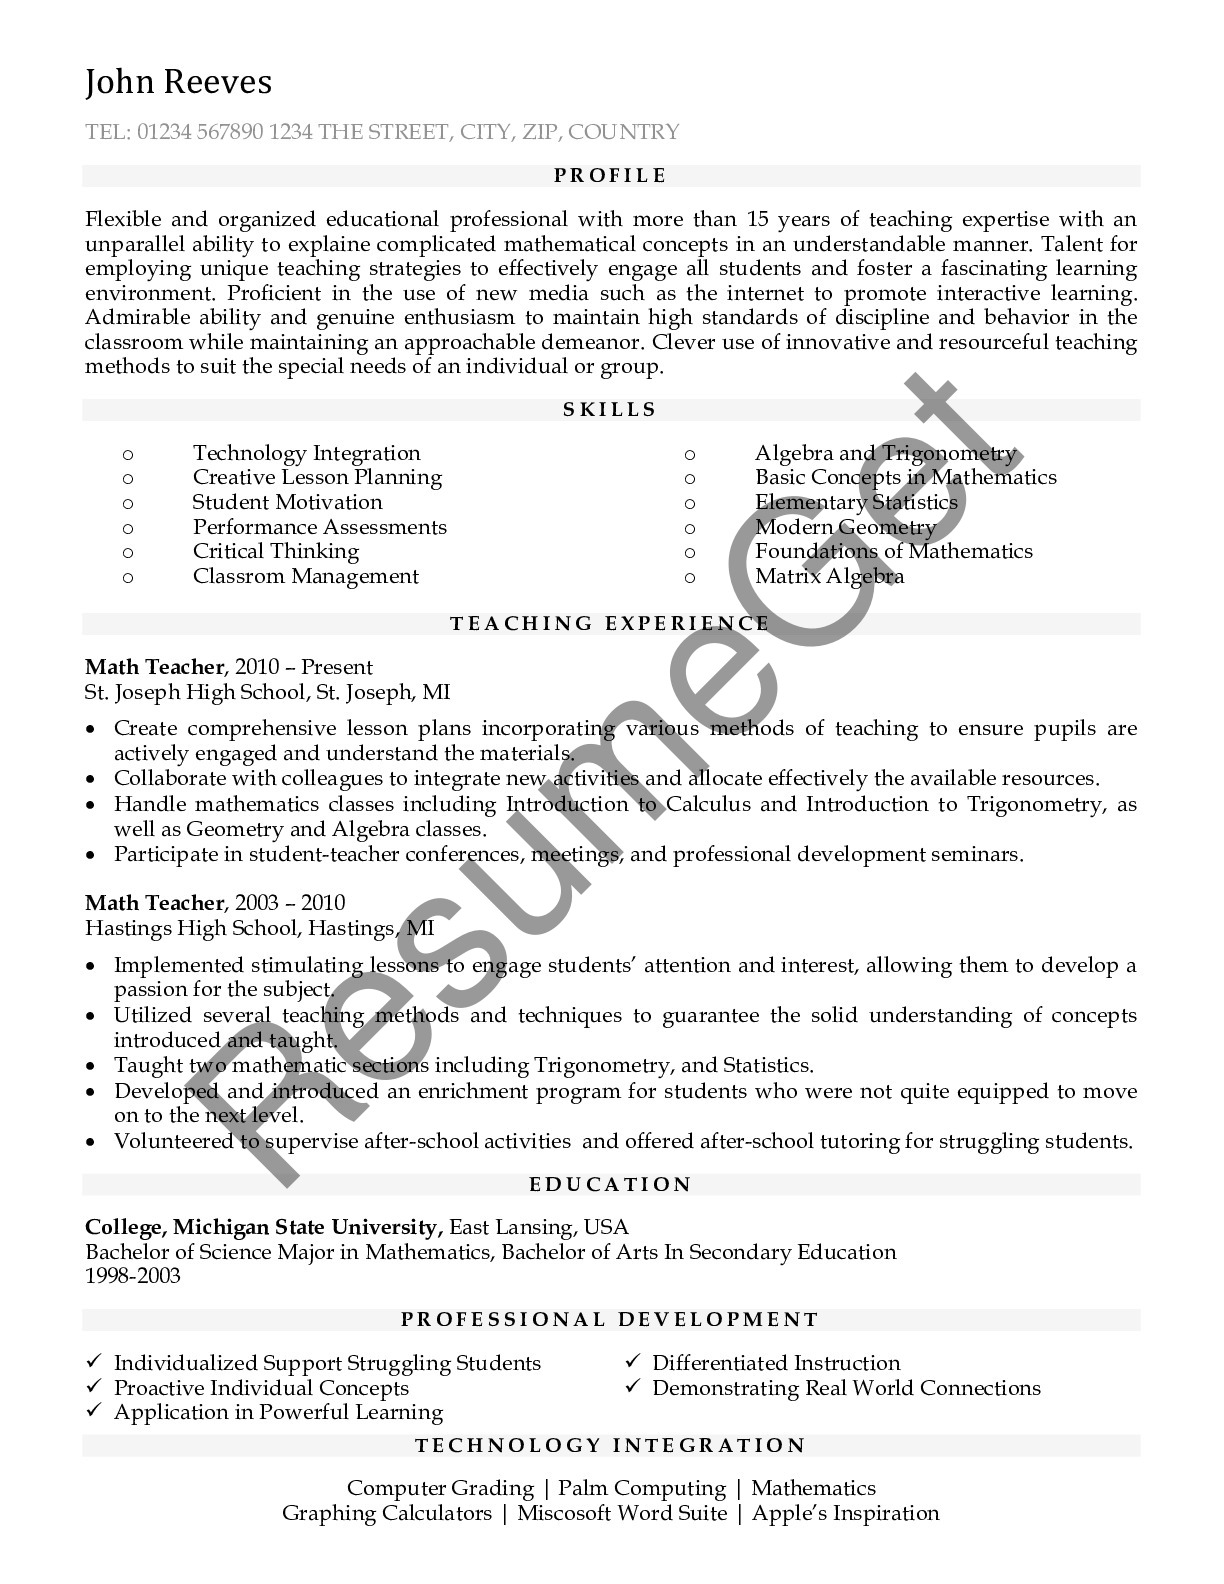 Resume Example for Teacher